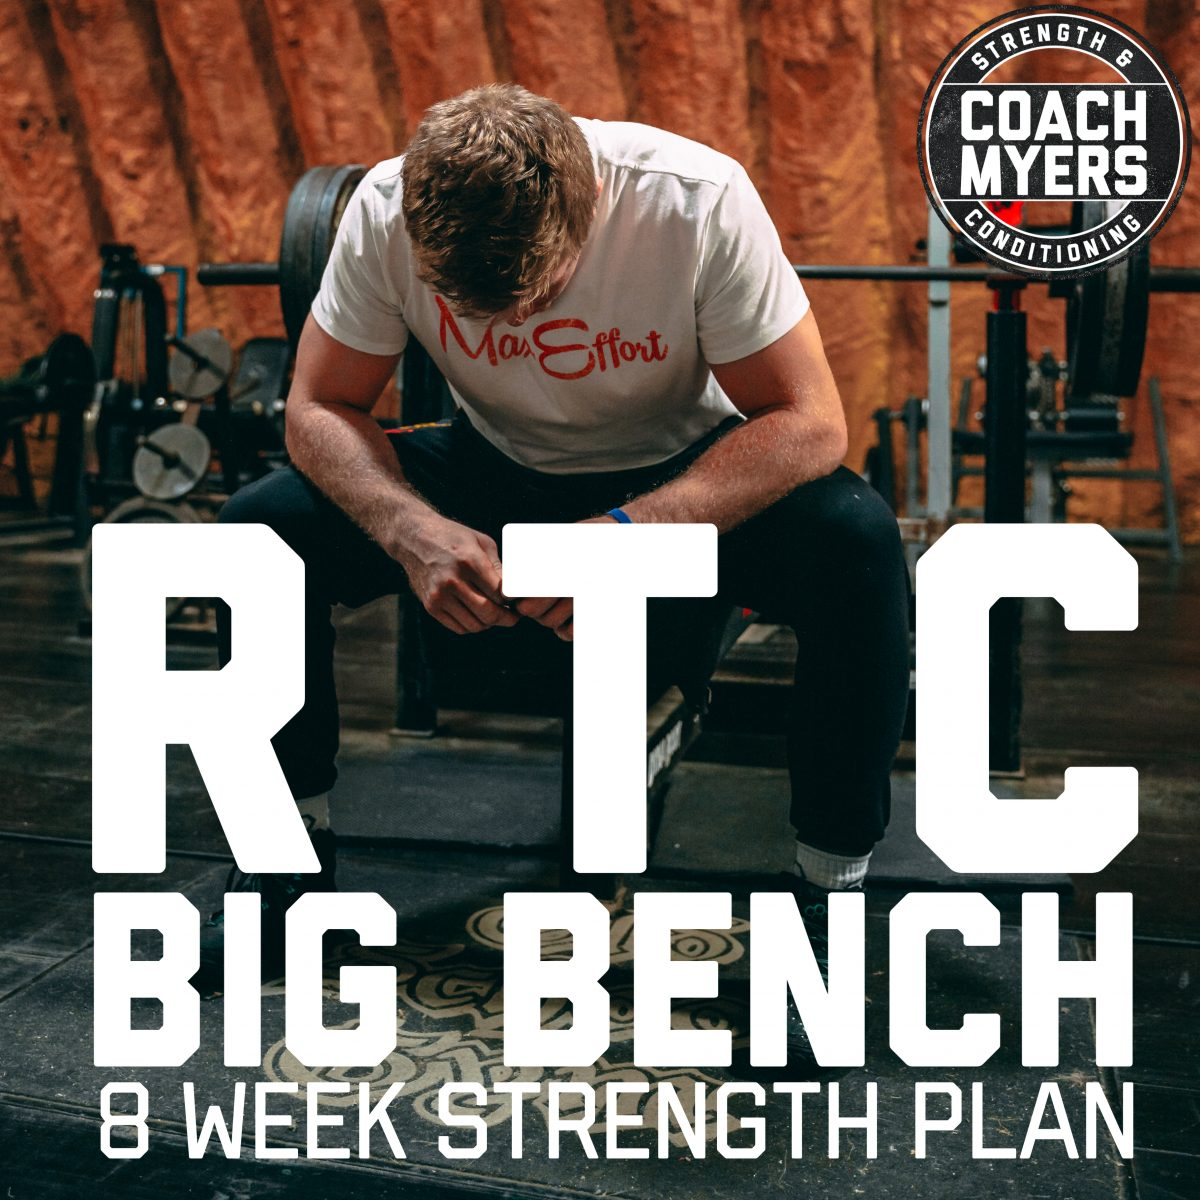 coach myers bench program